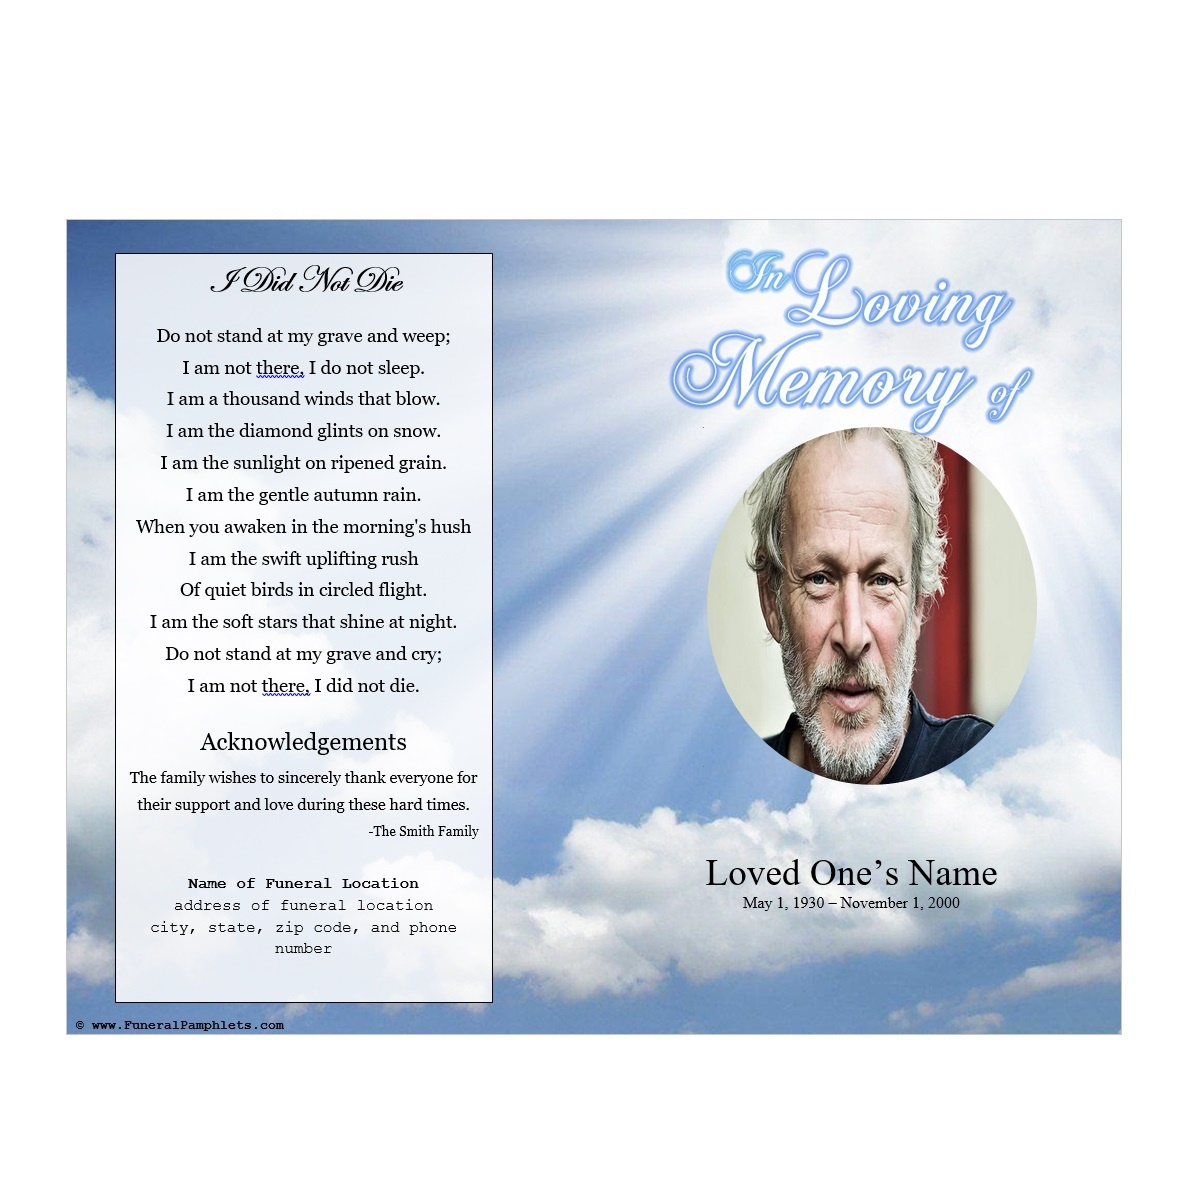 Sky Memorial Program | Funeral Pamphlets - Free Printable Funeral Programs